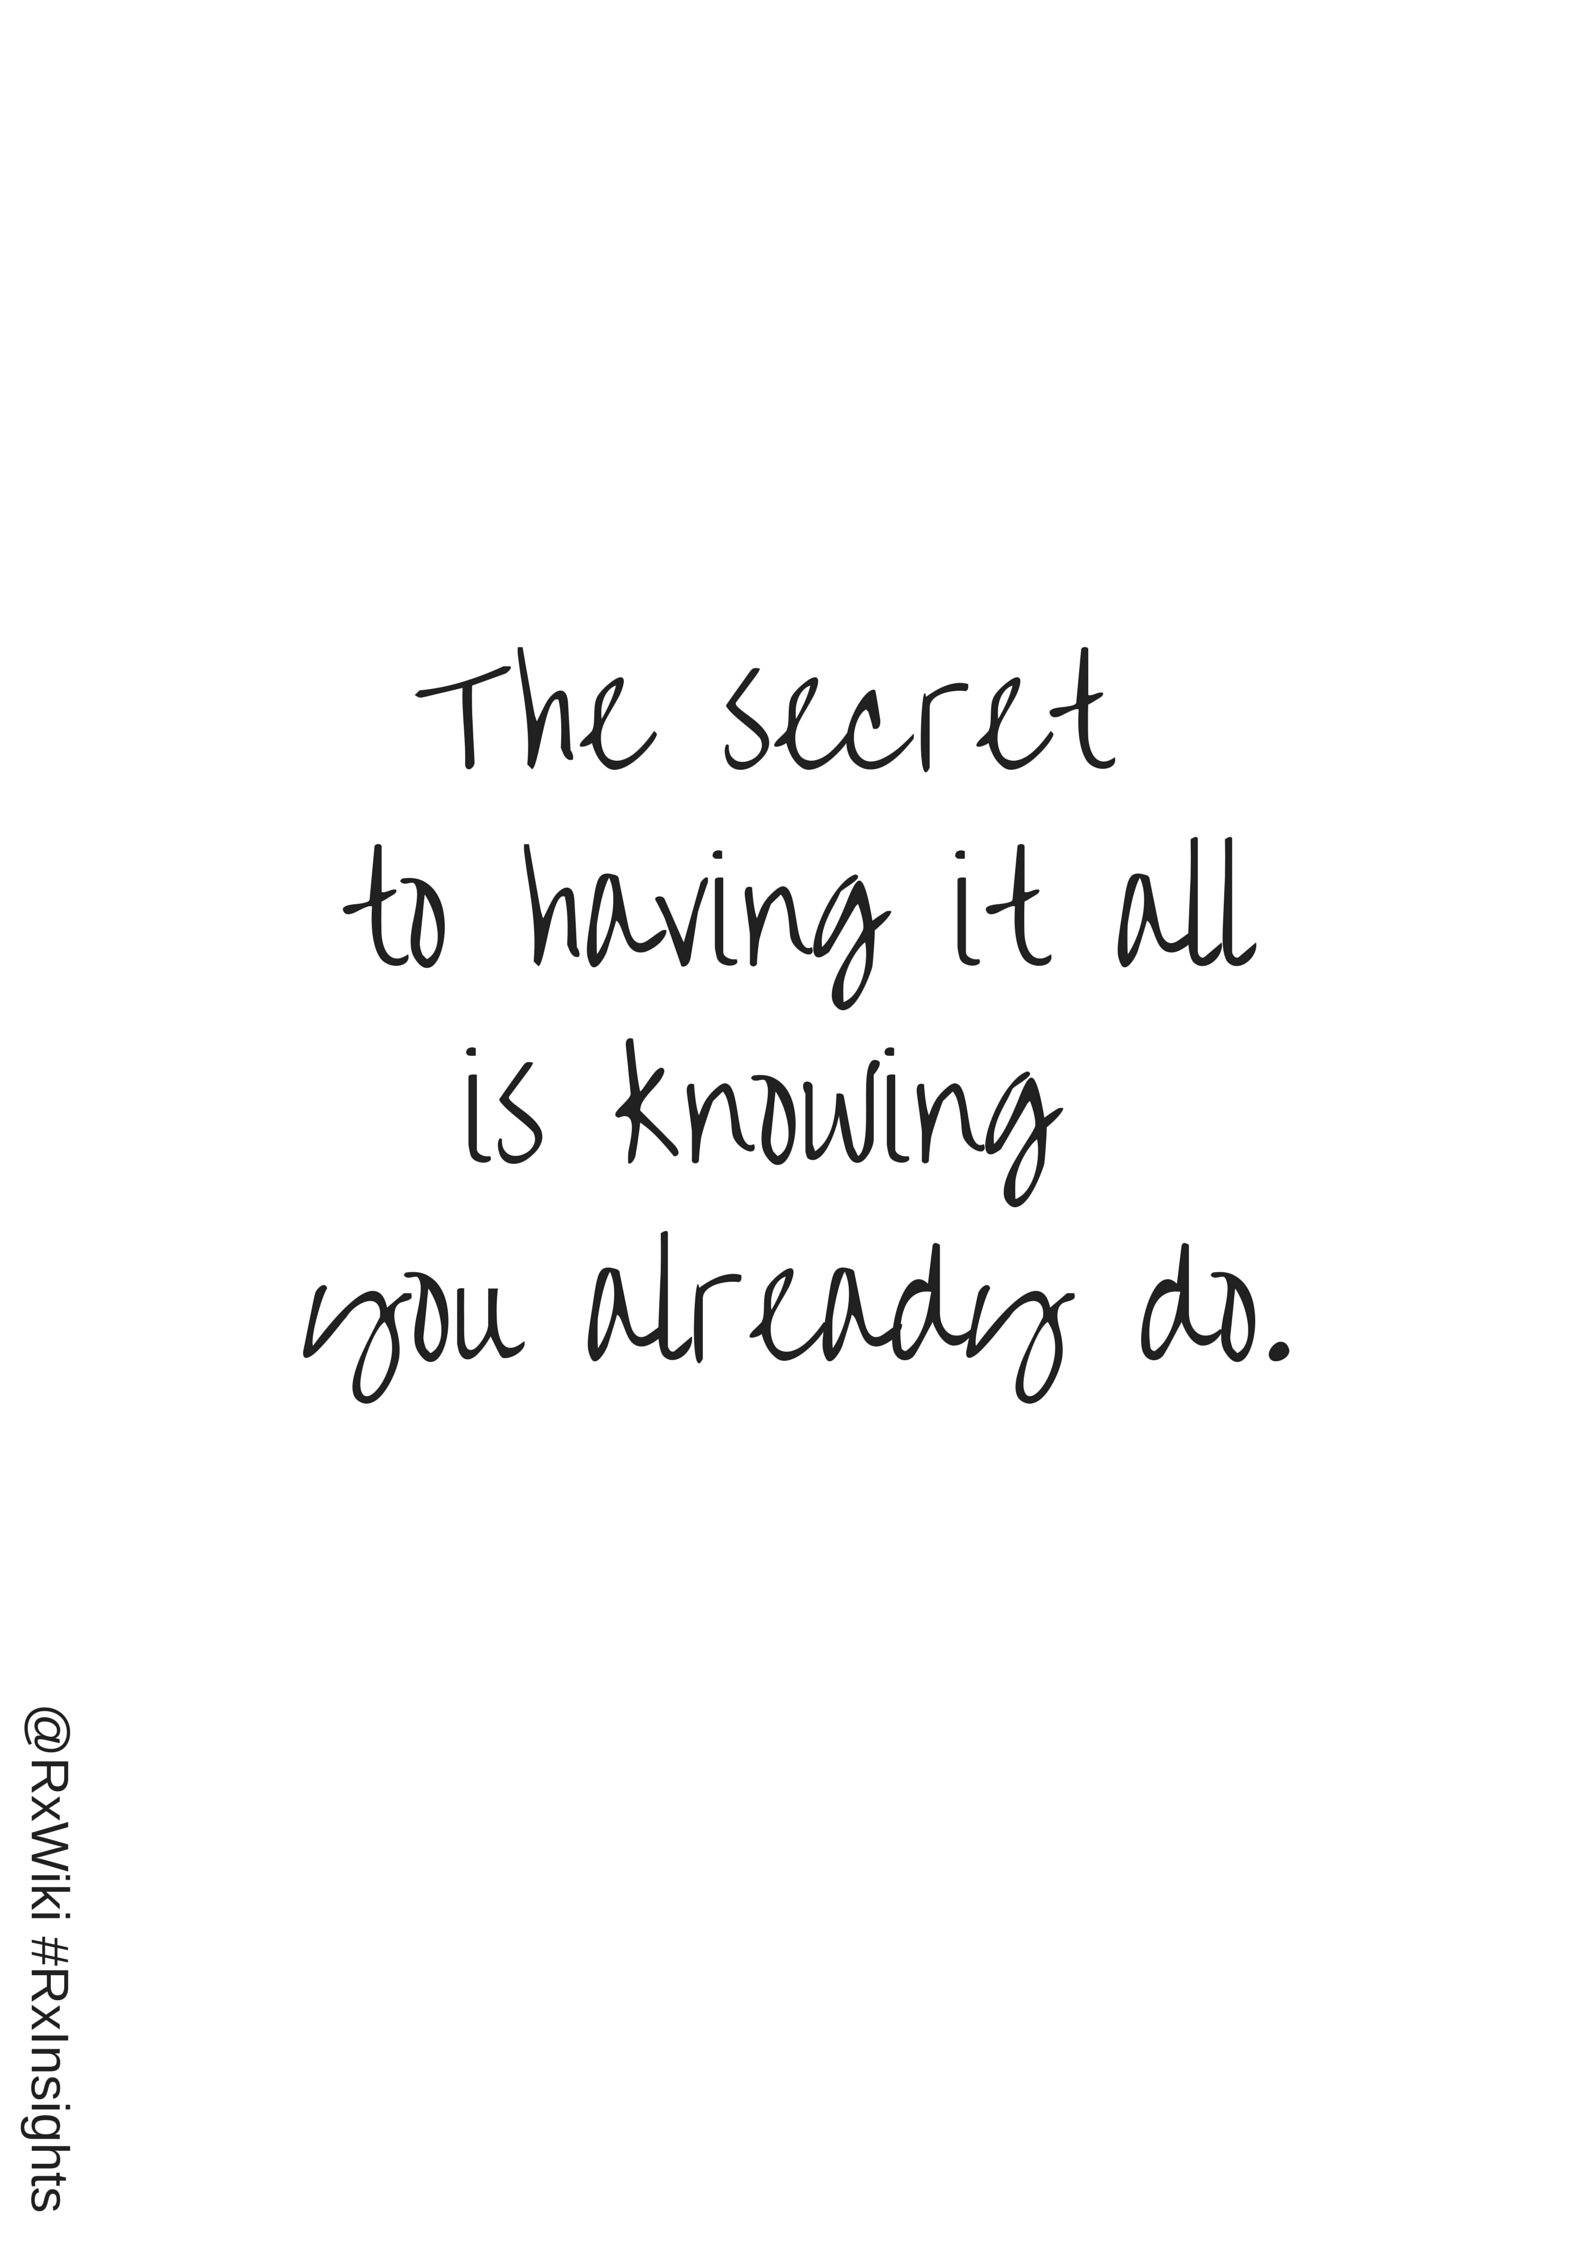 I Love My Life Quotes New The Secret To Having It All Is Knowing You Already Do #quote #secret